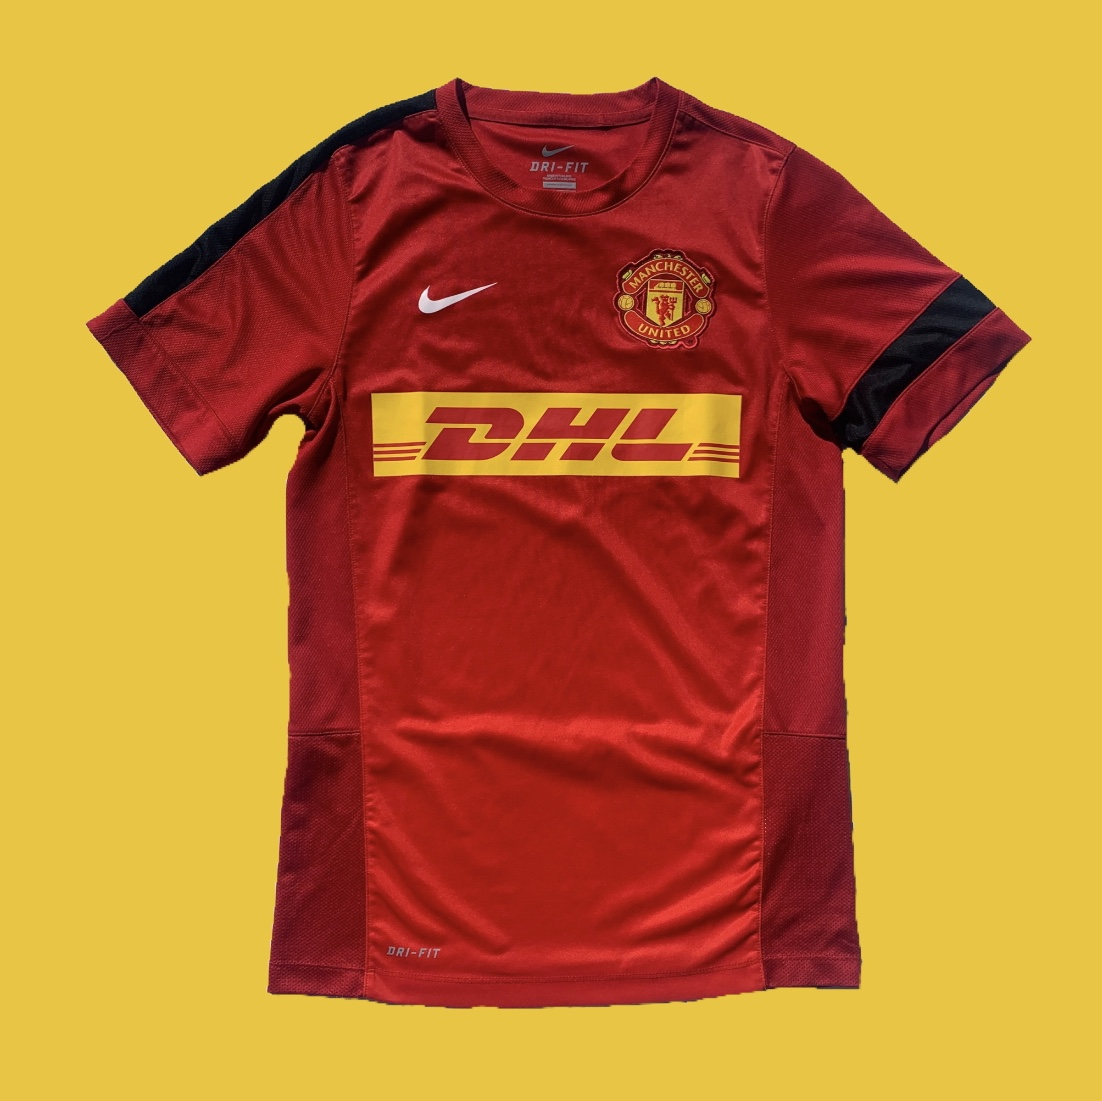 cheap for discount b8f00 b2fc5 Nike Manchester United DHL Soccer Jersey Size:... - Depop